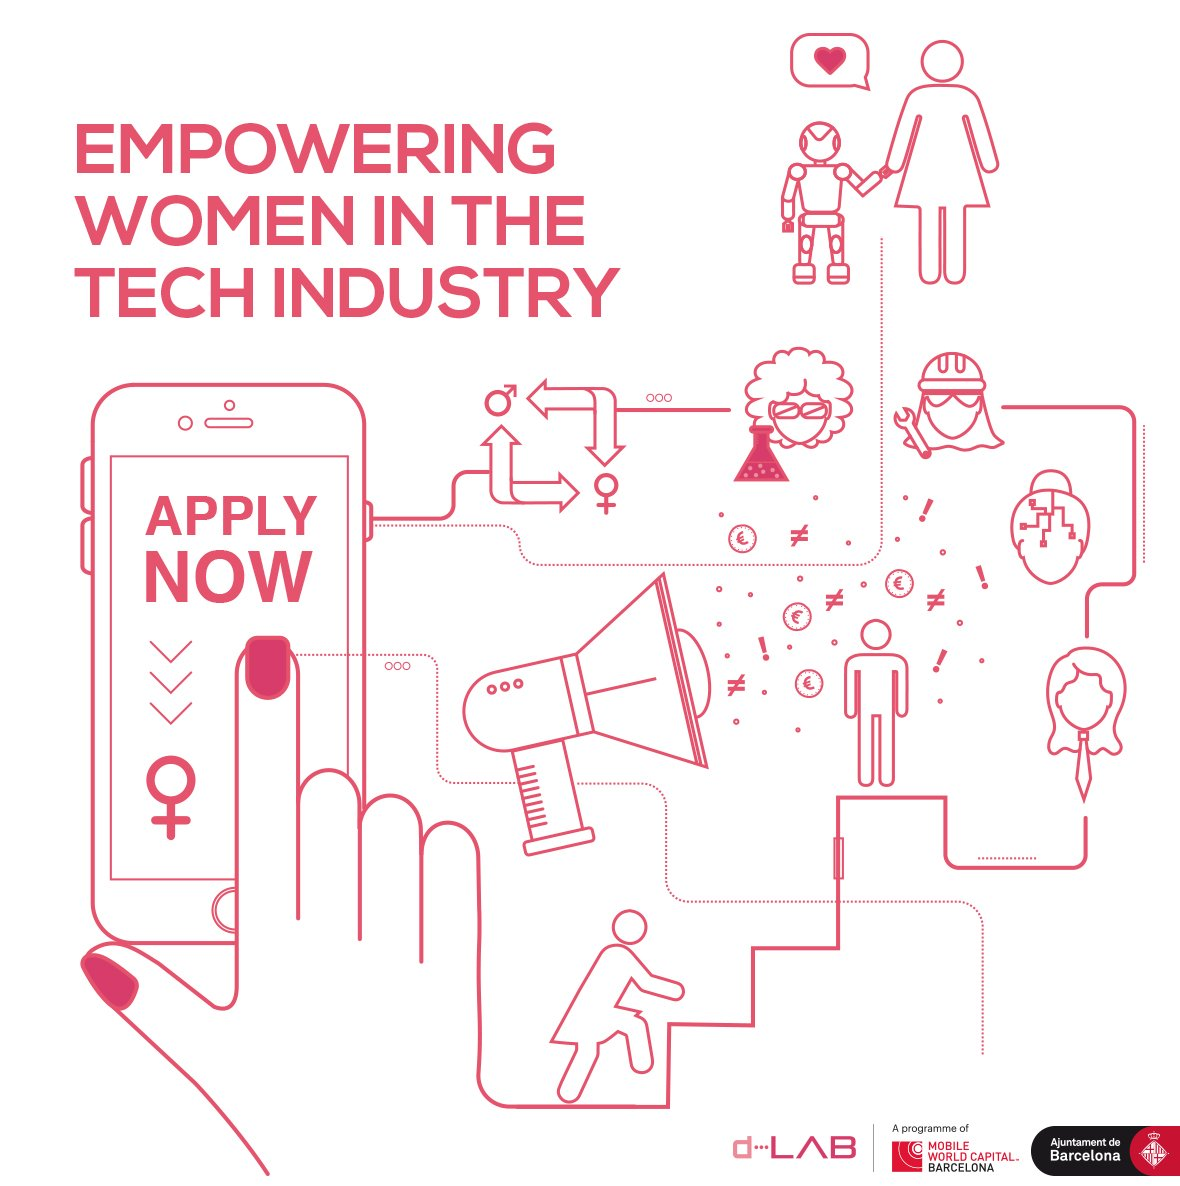 How to reduce the gender gap across the #tech industry? Any ideas? Share:  http://www. d-lab.tech/women-in-tech  &nbsp;   #MWCapital #womenintech <br>http://pic.twitter.com/X3KqOqfNxt